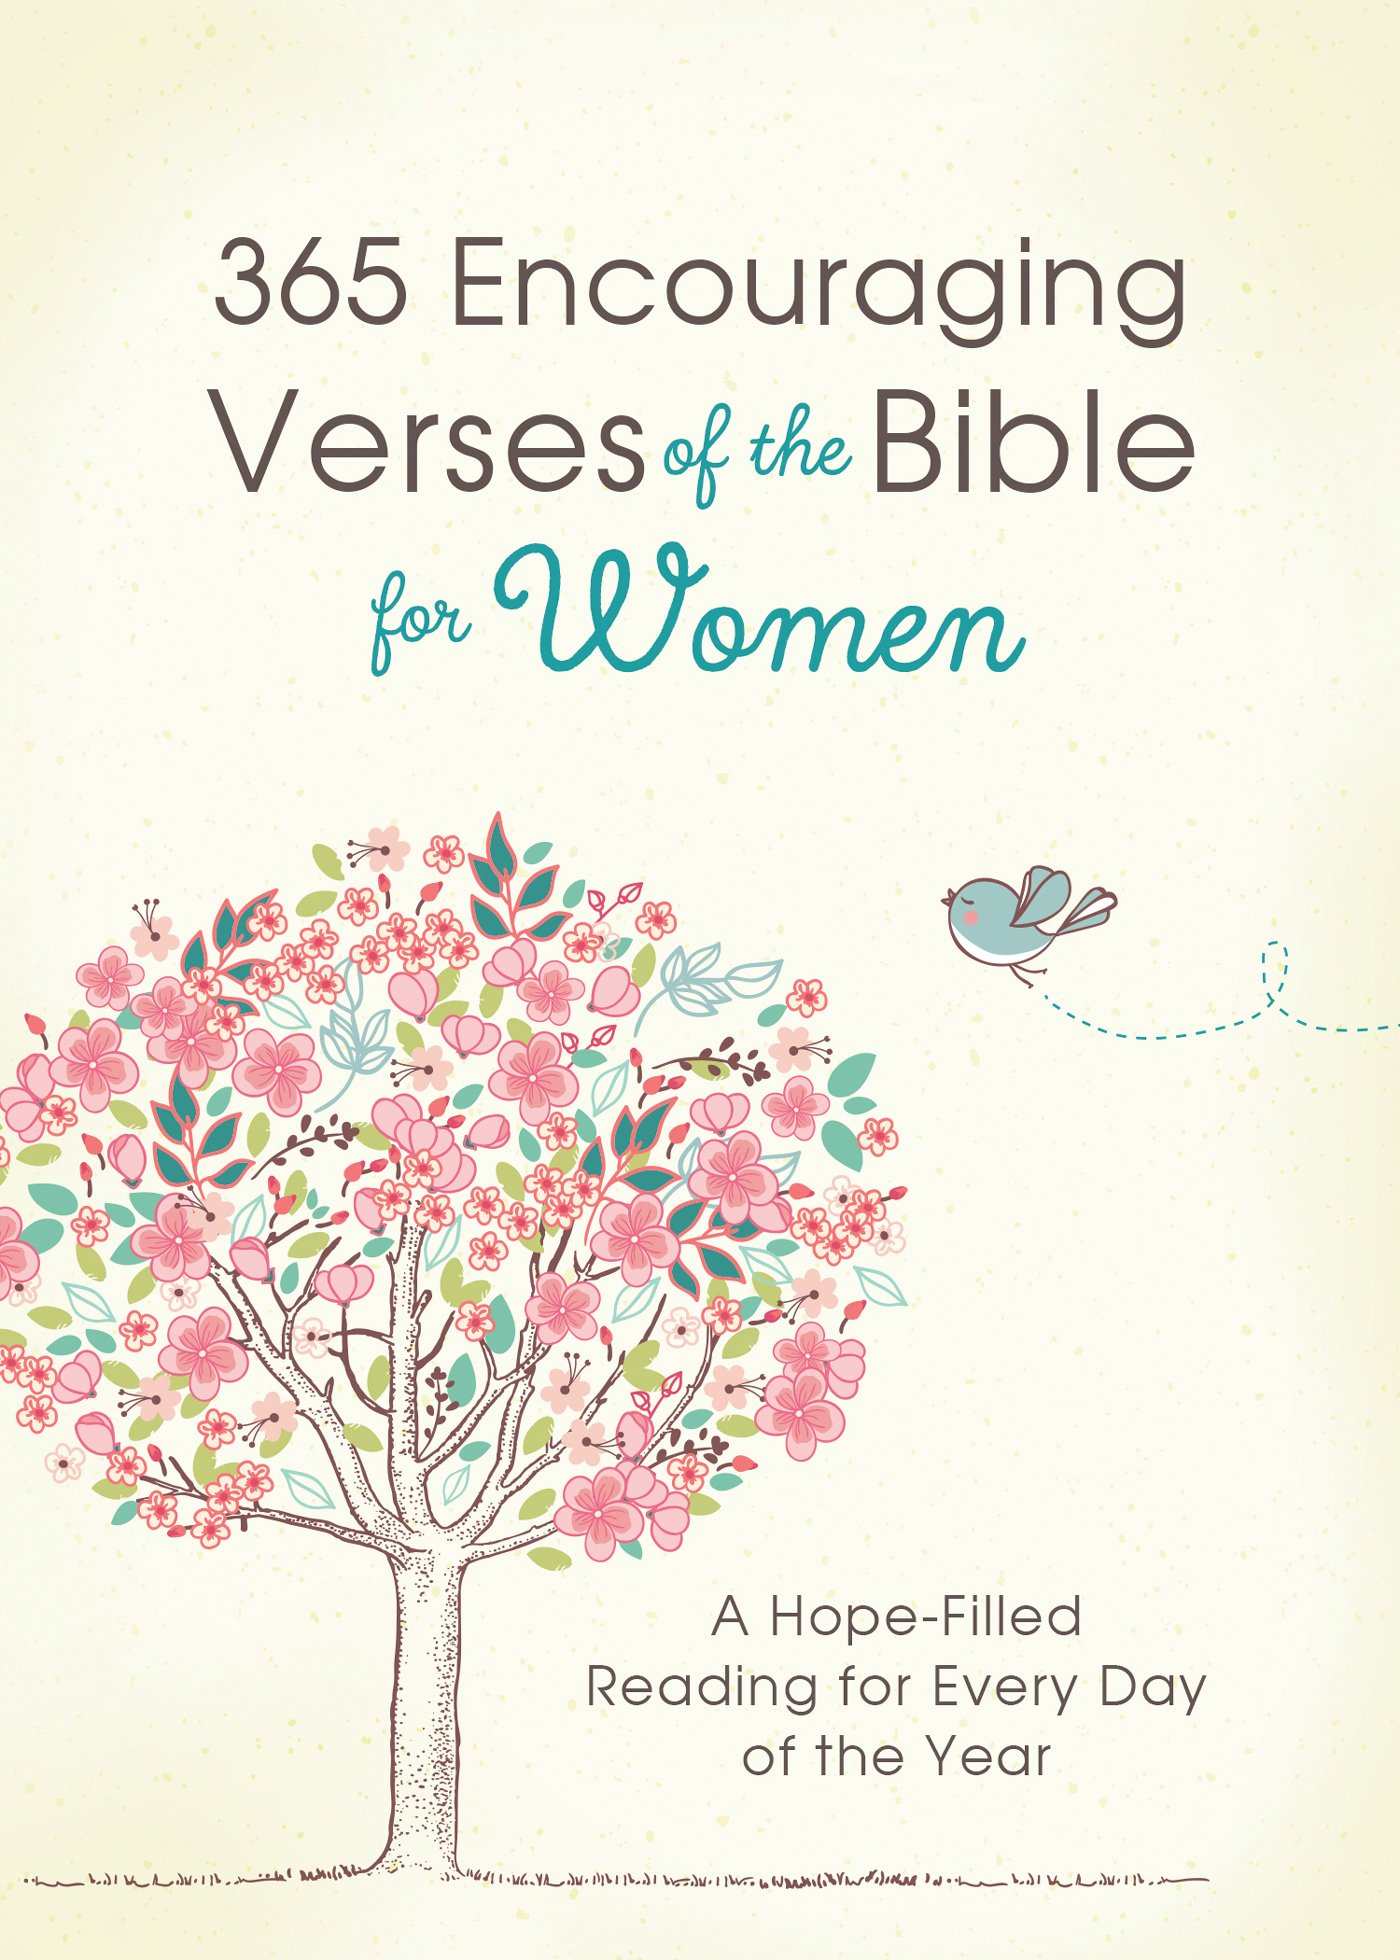 365 Encouraging Verses of the Bible for Women: A Hope-Filled Reading for Every Day of the Year